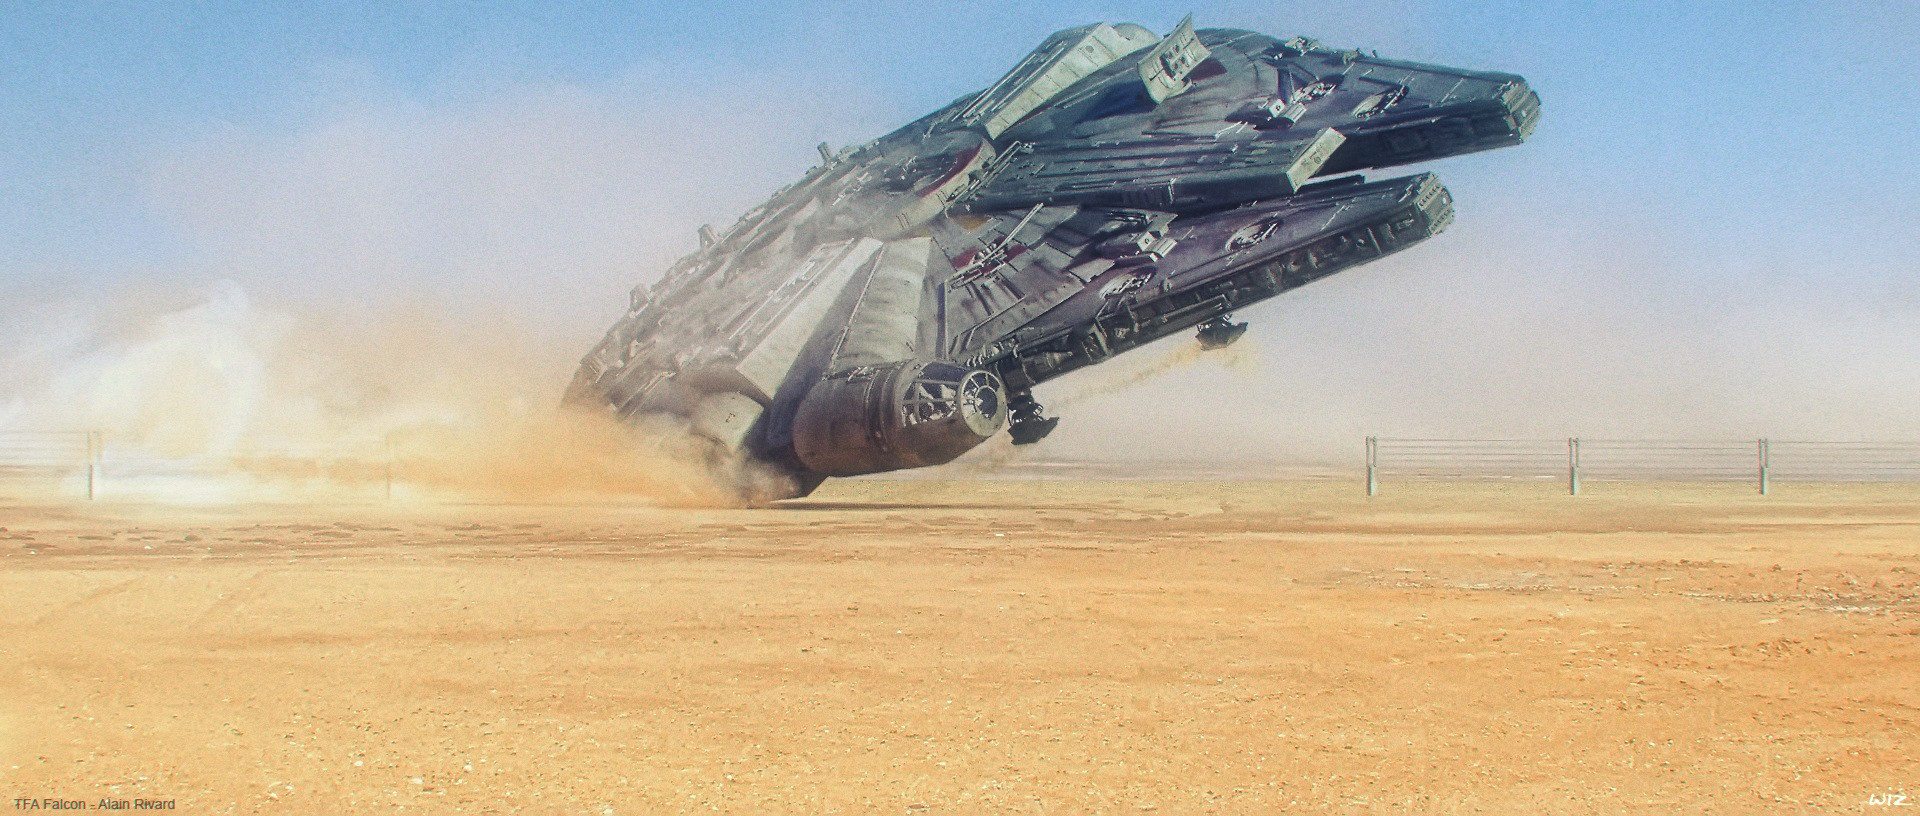 Paul wiz johnson force awakanes jakku escape